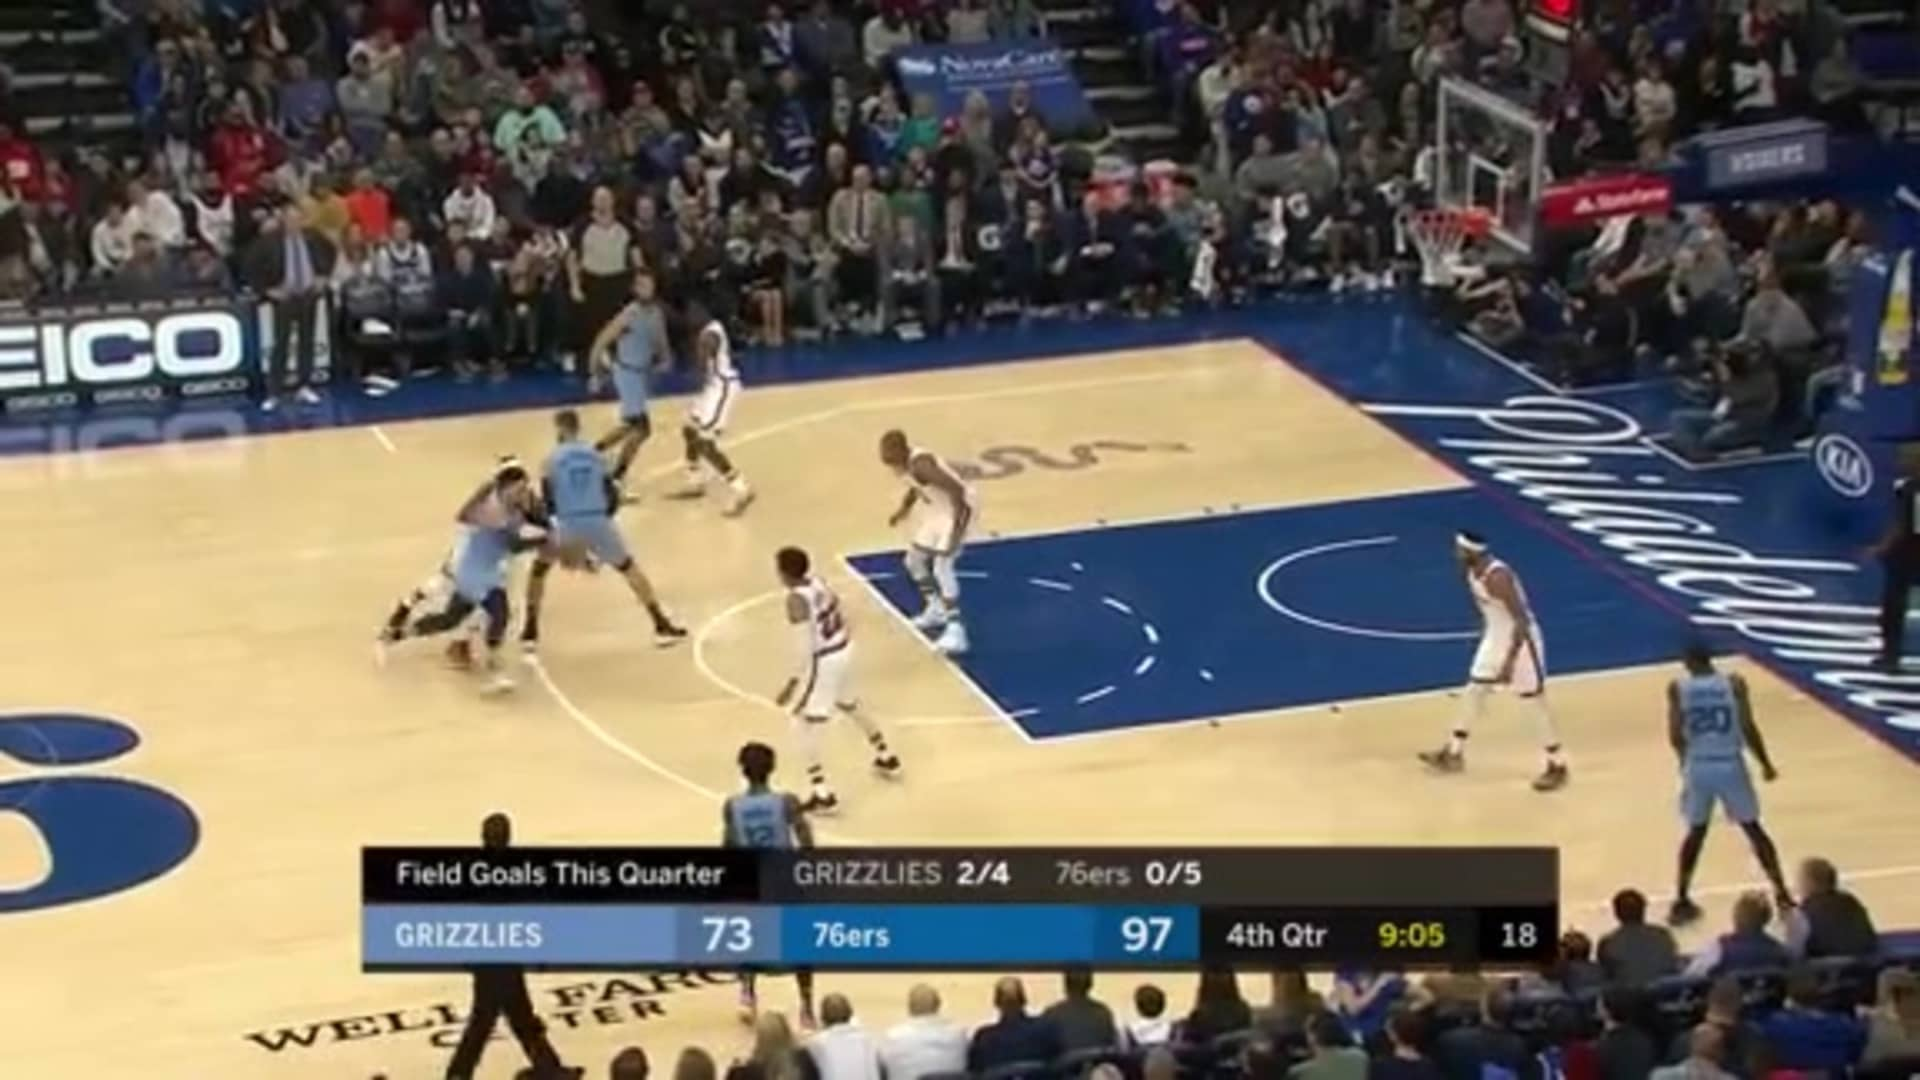 Grizzlies with a 11-0 run vs. Sixers in the fourth quarter